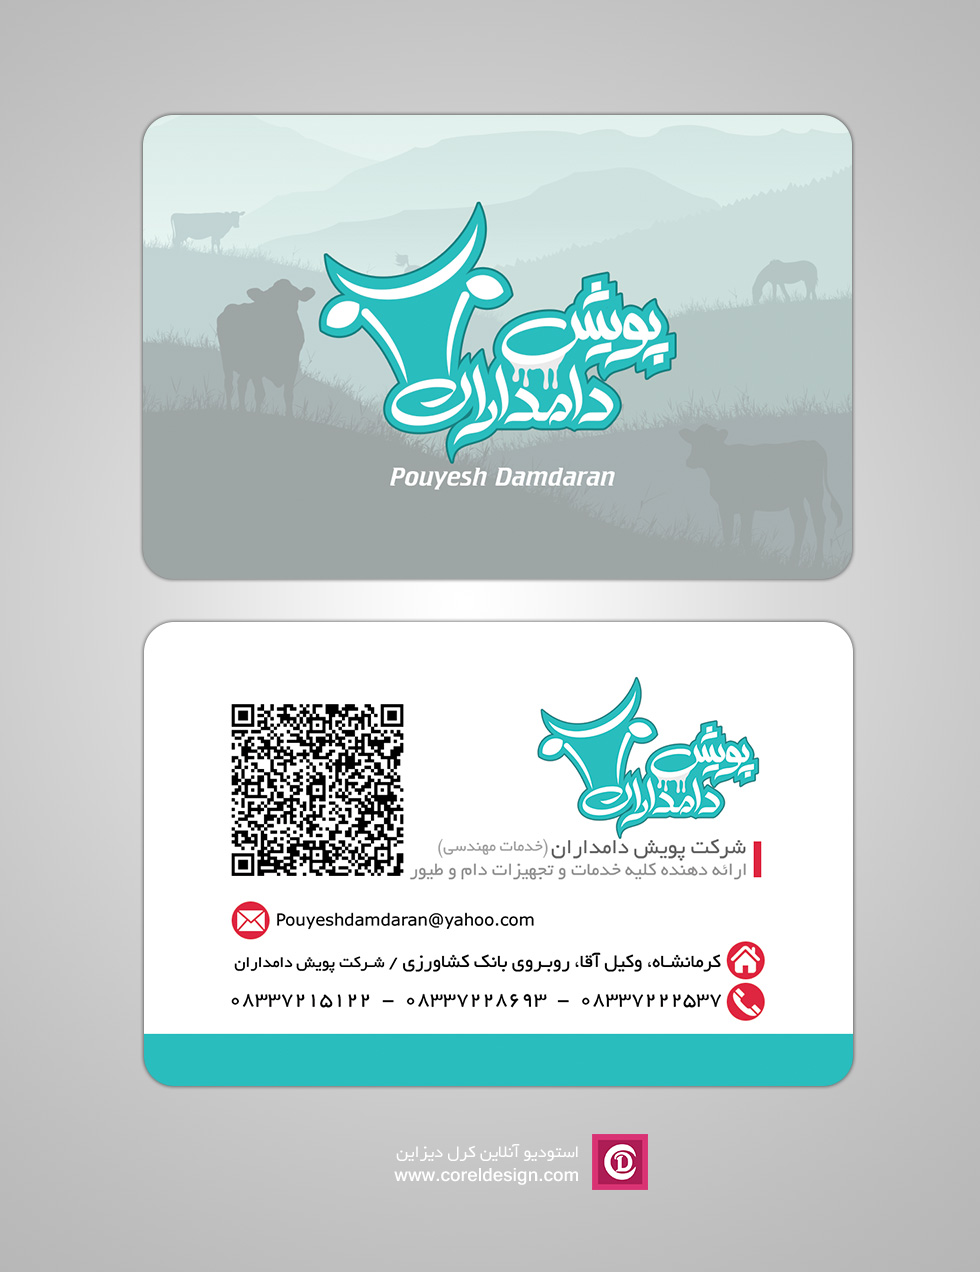 Demo_card_Pouyesh_Damdaran_1